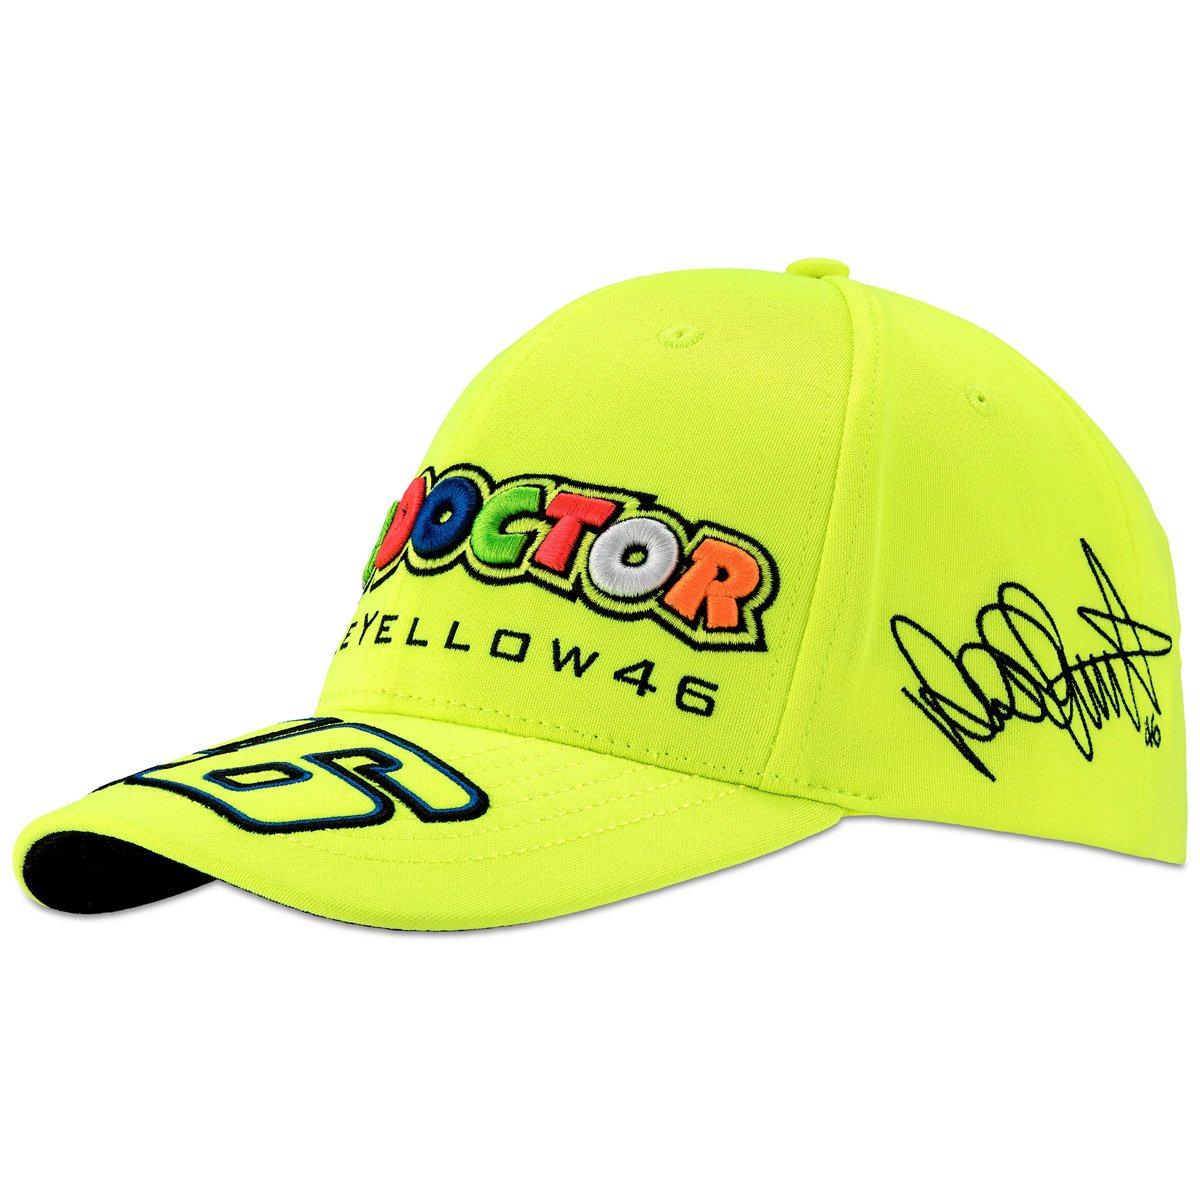 Valentino Rossi VR46 Moto GP The Doctor Yellow Baseball Cap Official 2018